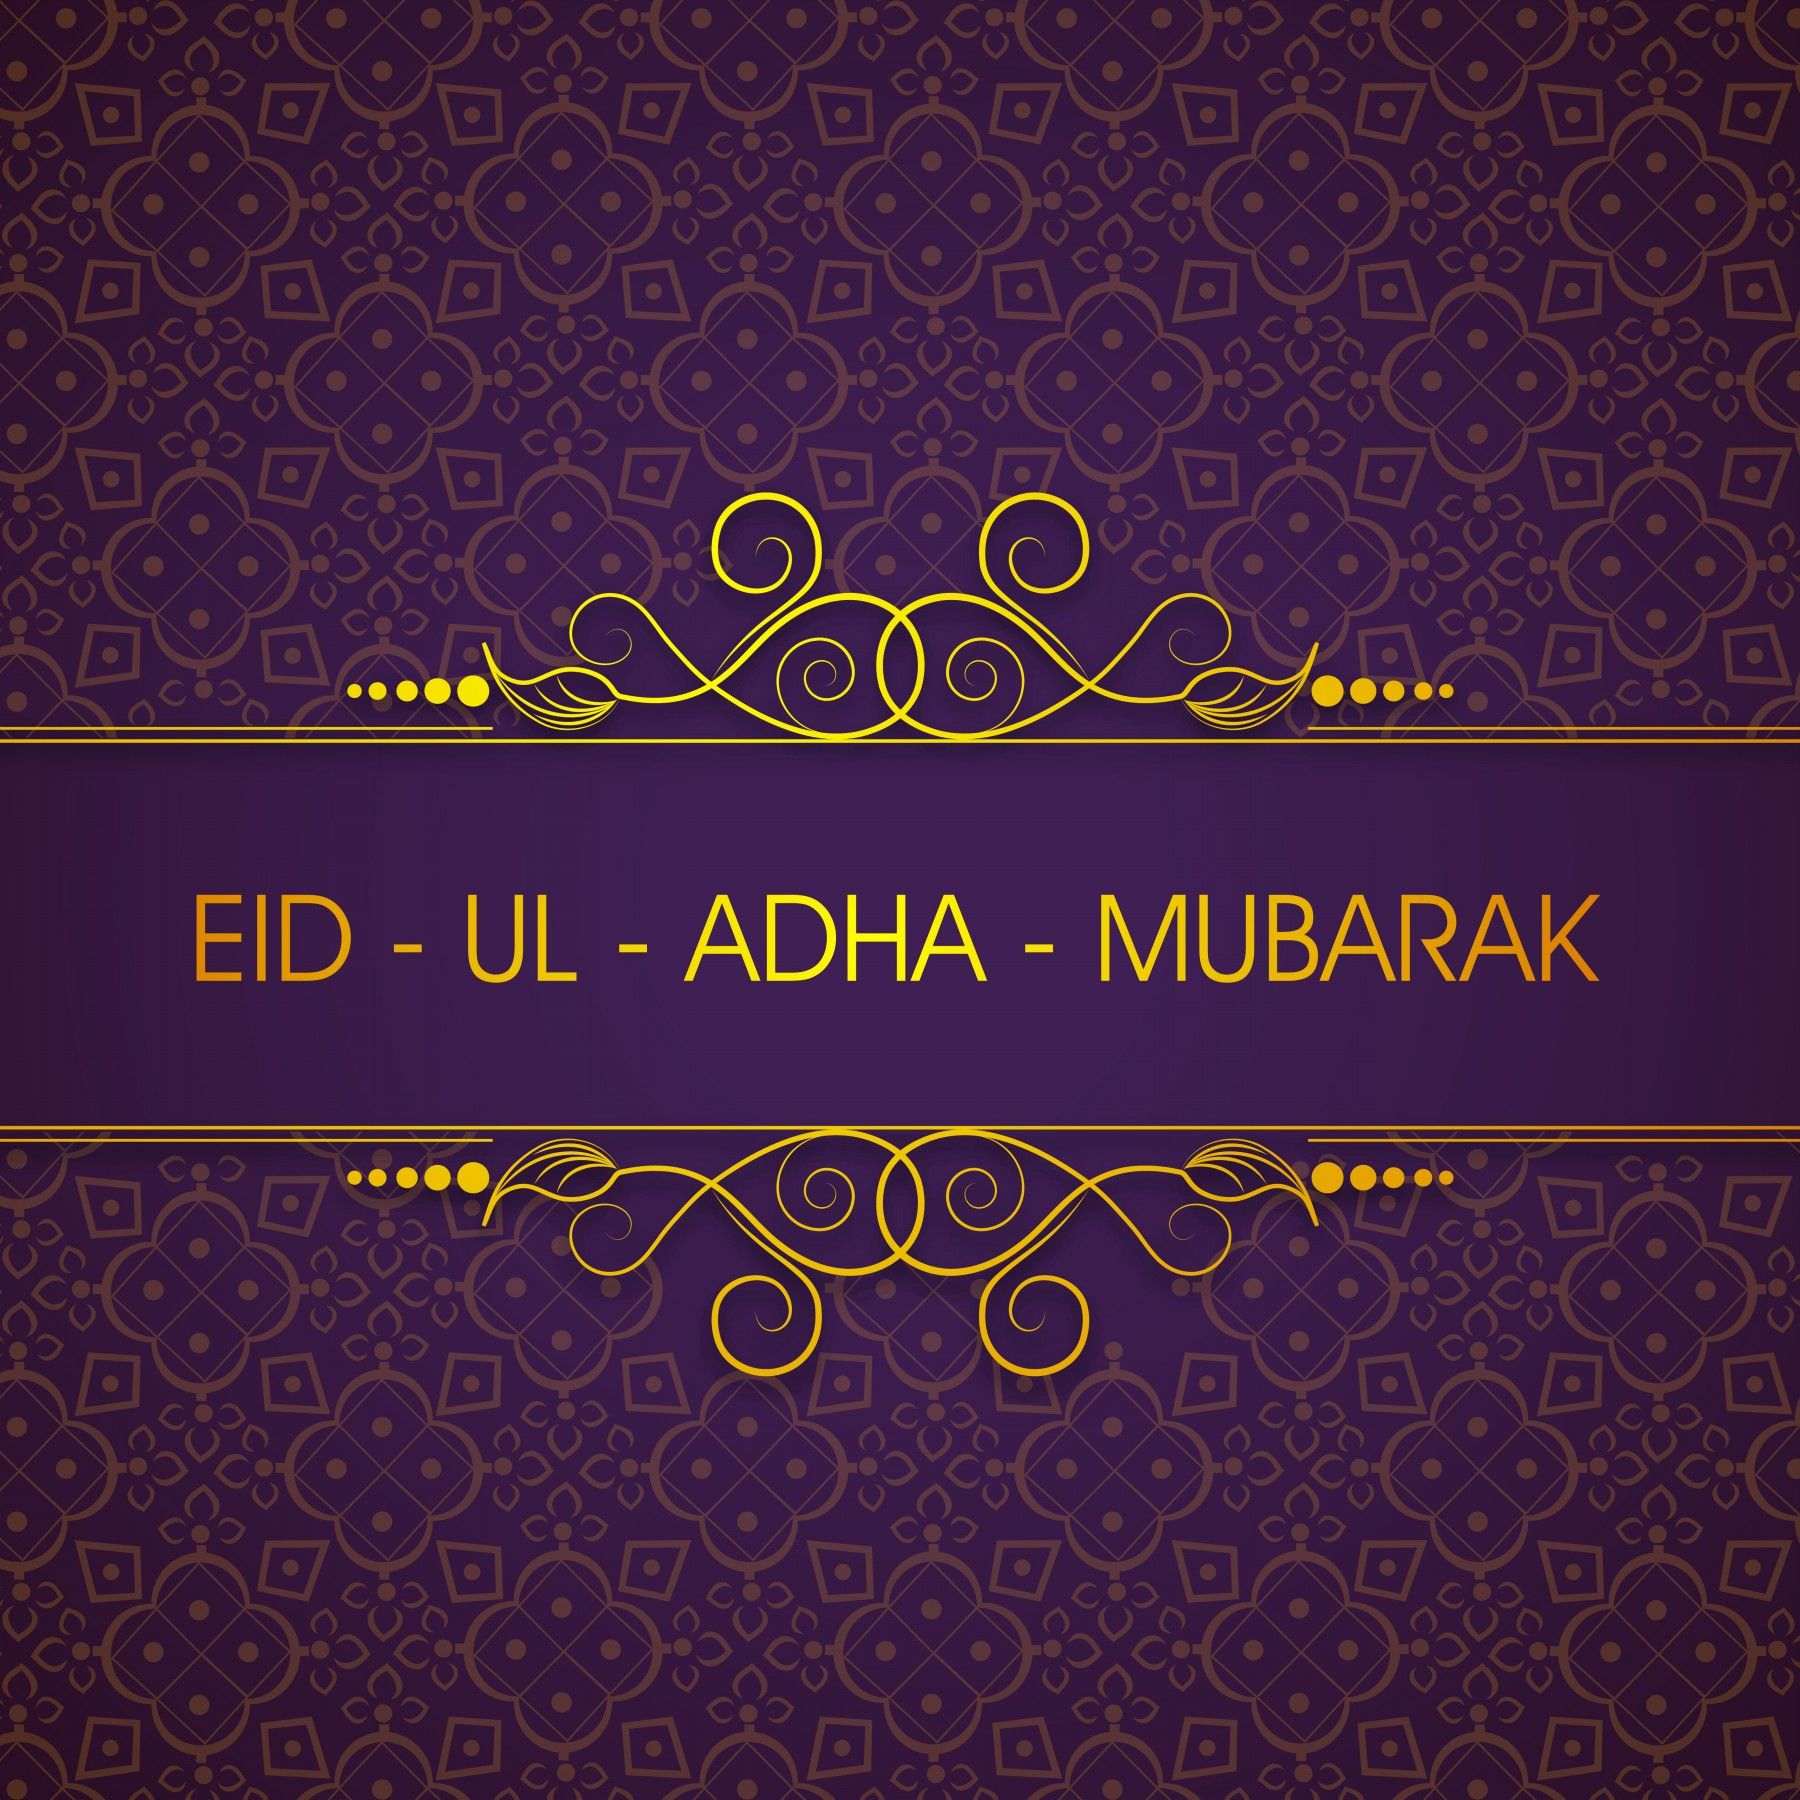 Only Exclusive Best Images Backgrounds Cards Eid Mubarak 2018